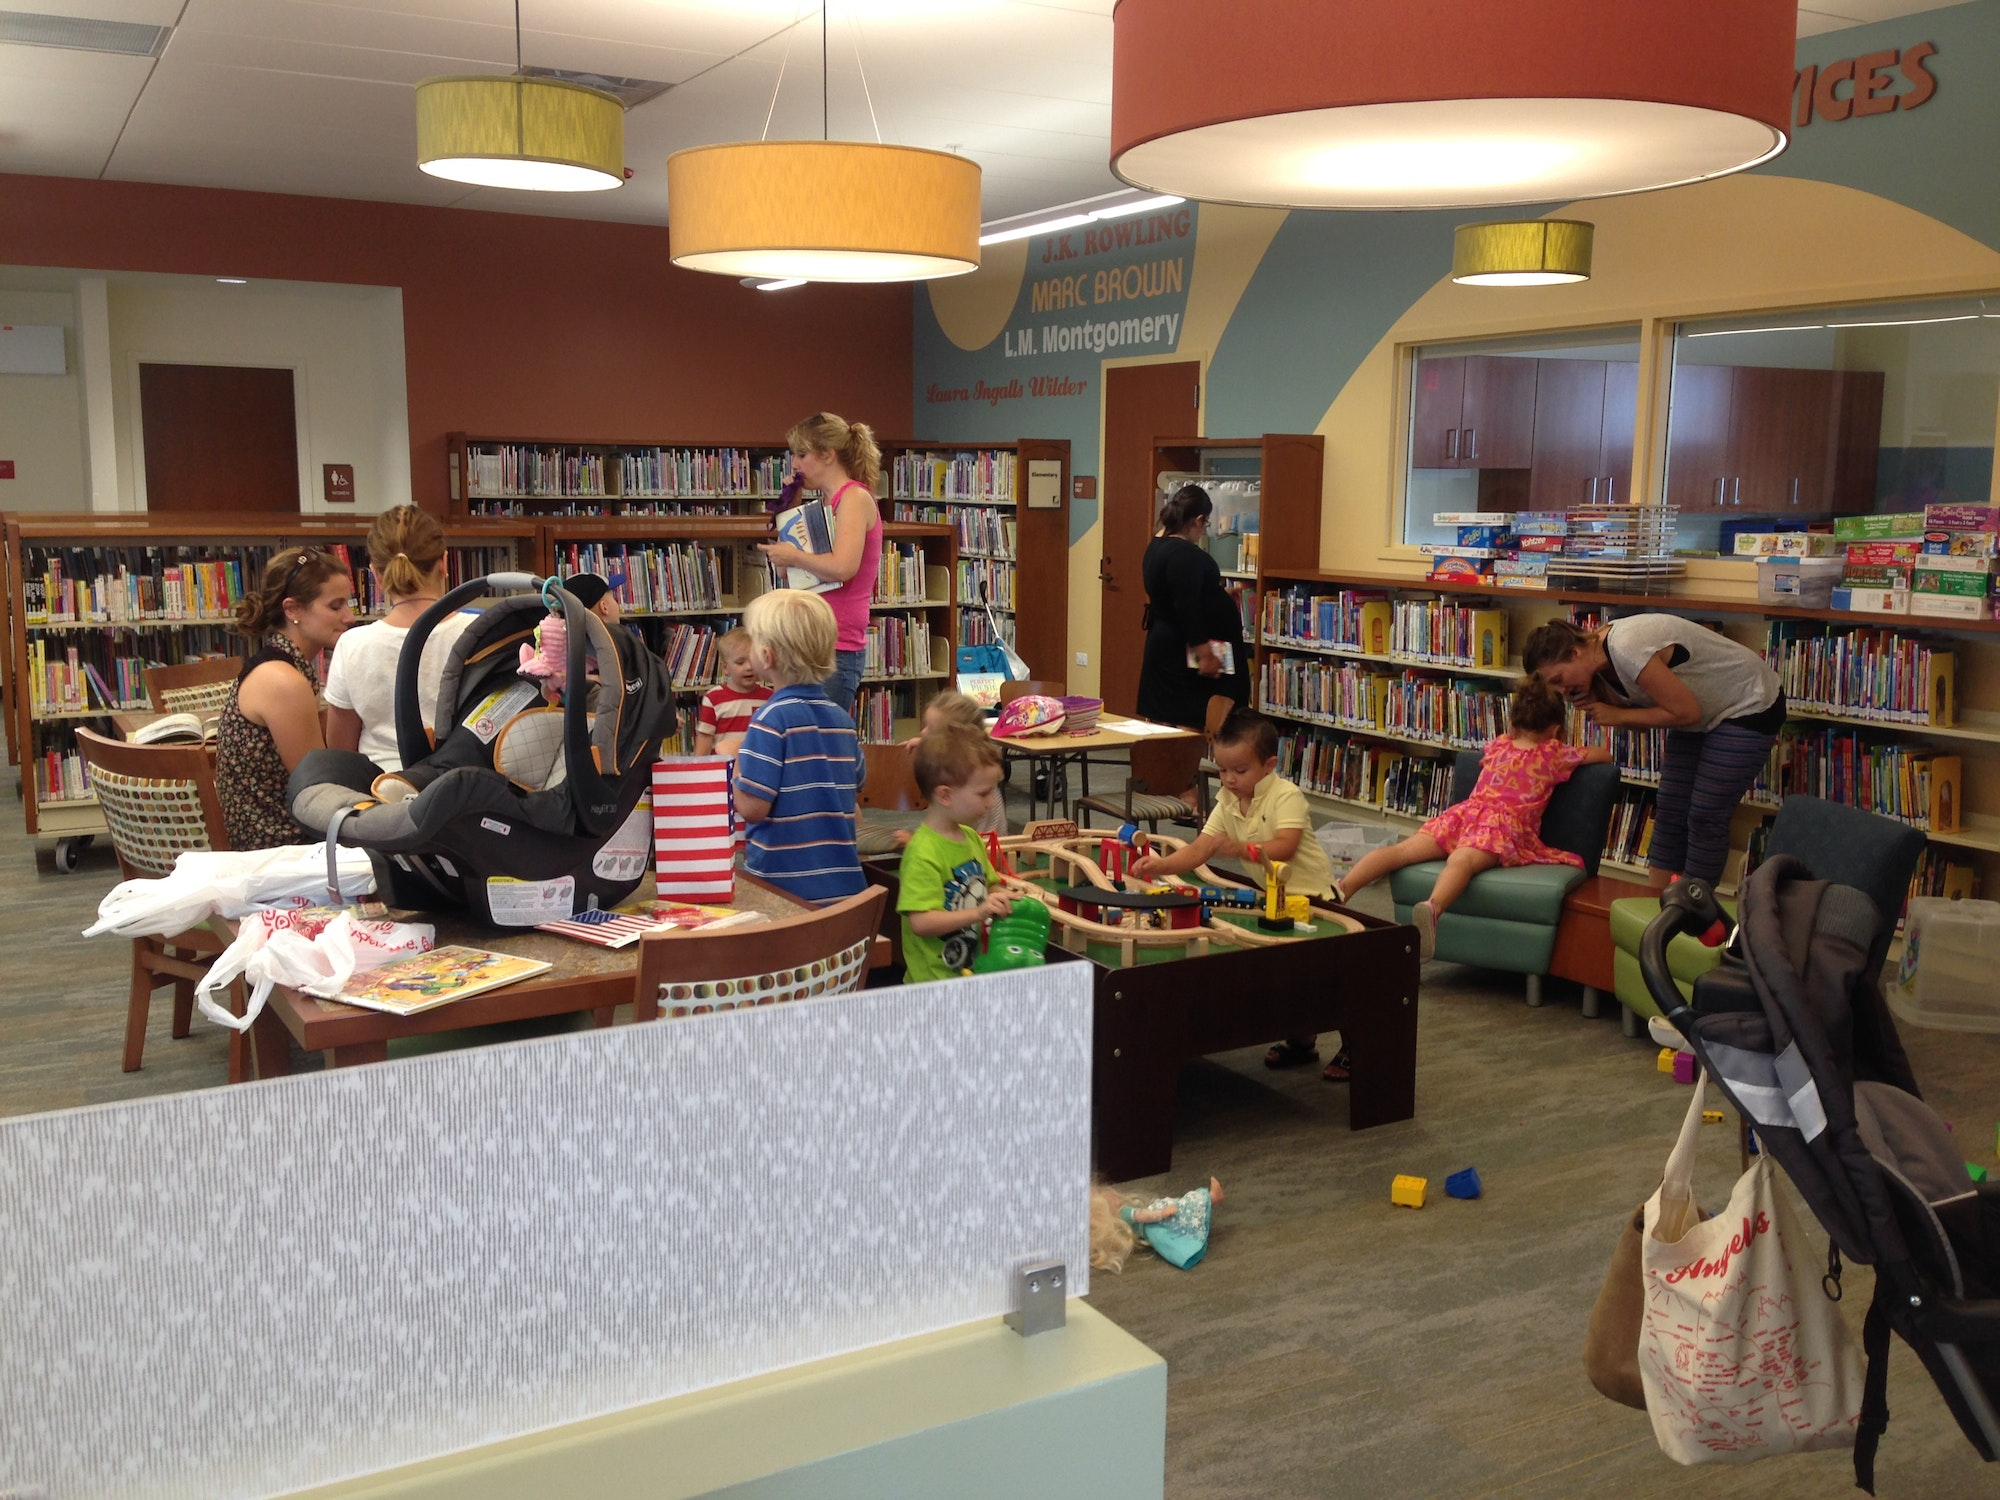 Children play with toys and parents browse books in the kids area